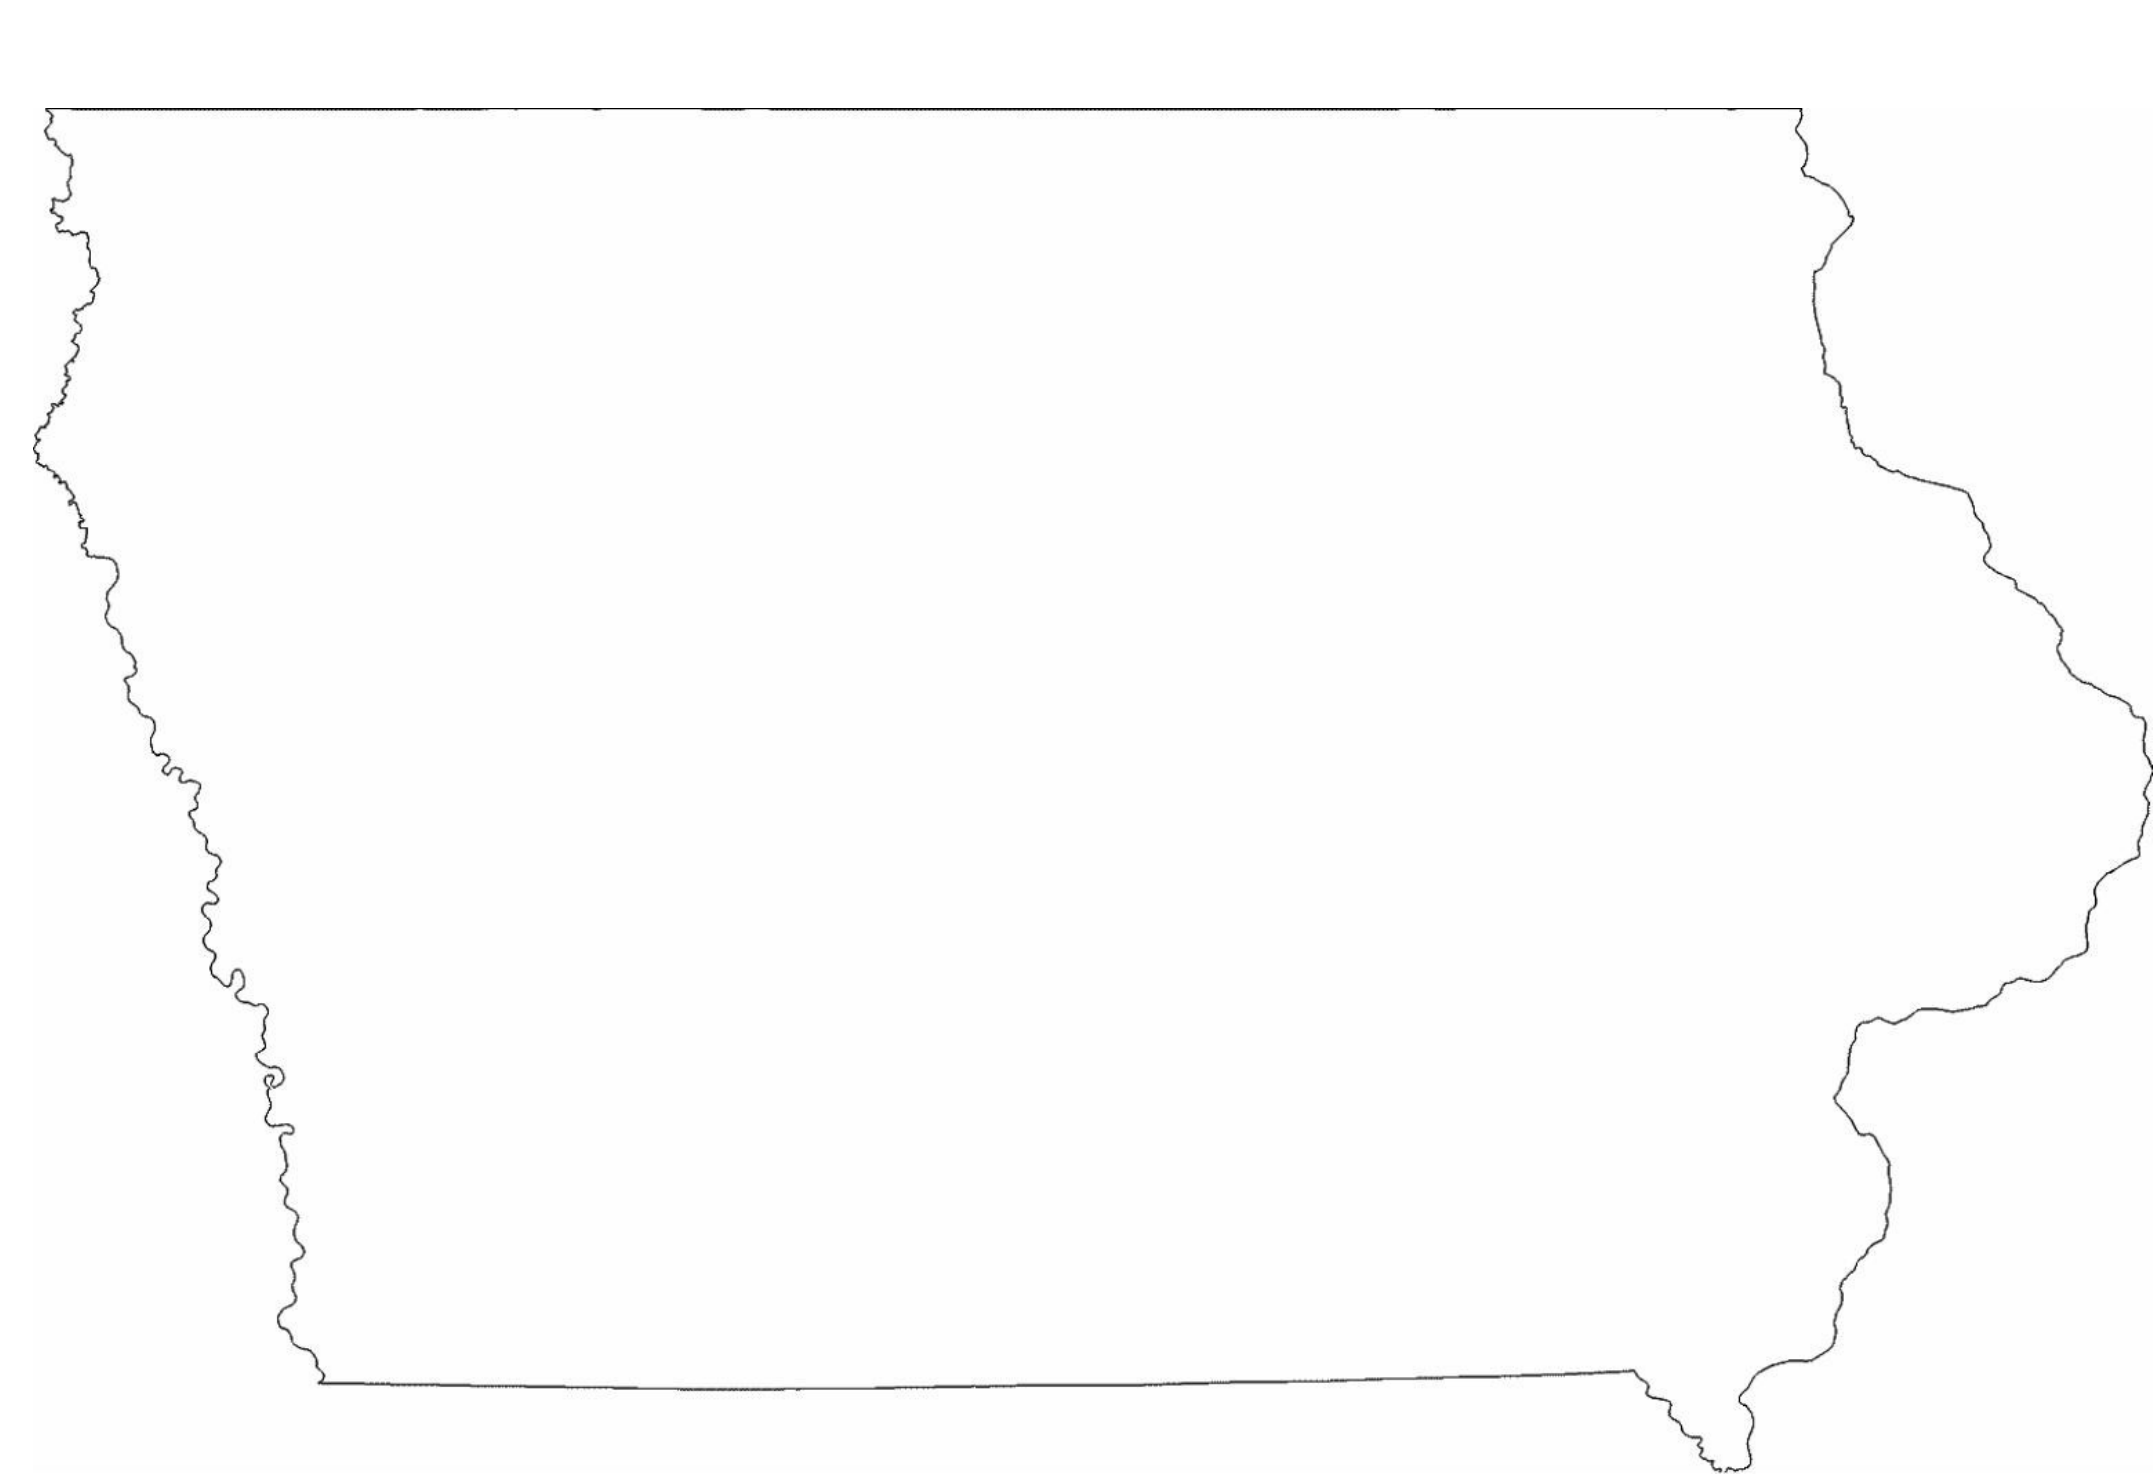 Iowa State Outline Map Free Download